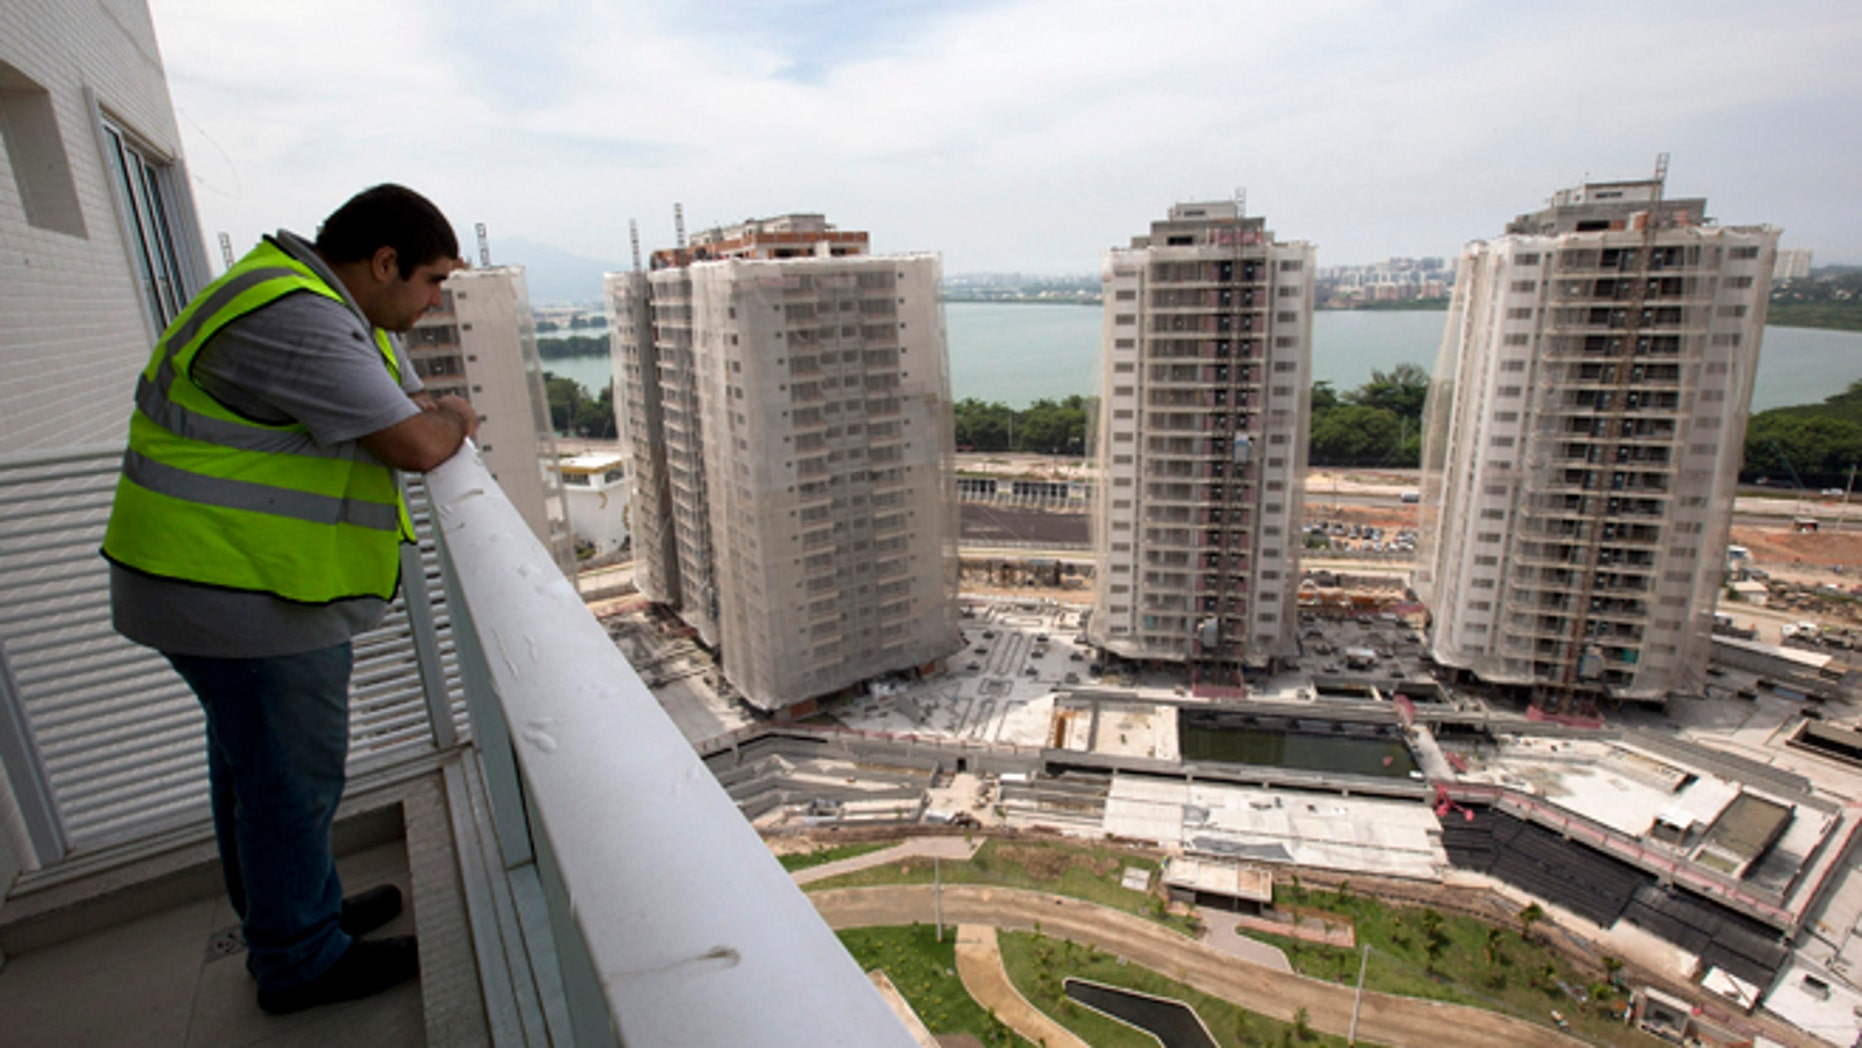 """In this March 16, 2015 photo, a worker stands on the balcony of an apartment inside the Rio 2016 Olympic Games athletes village in Rio de Janeiro, Brazil. Christopher Gaffney, who spent 5 1/2 years in Rio researching the 2014 World Cup and Olympics, called the village """"a transfer of wealth program from the public (treasury) to private construction firms."""" (AP Photo/Silvia Izquierdo)"""